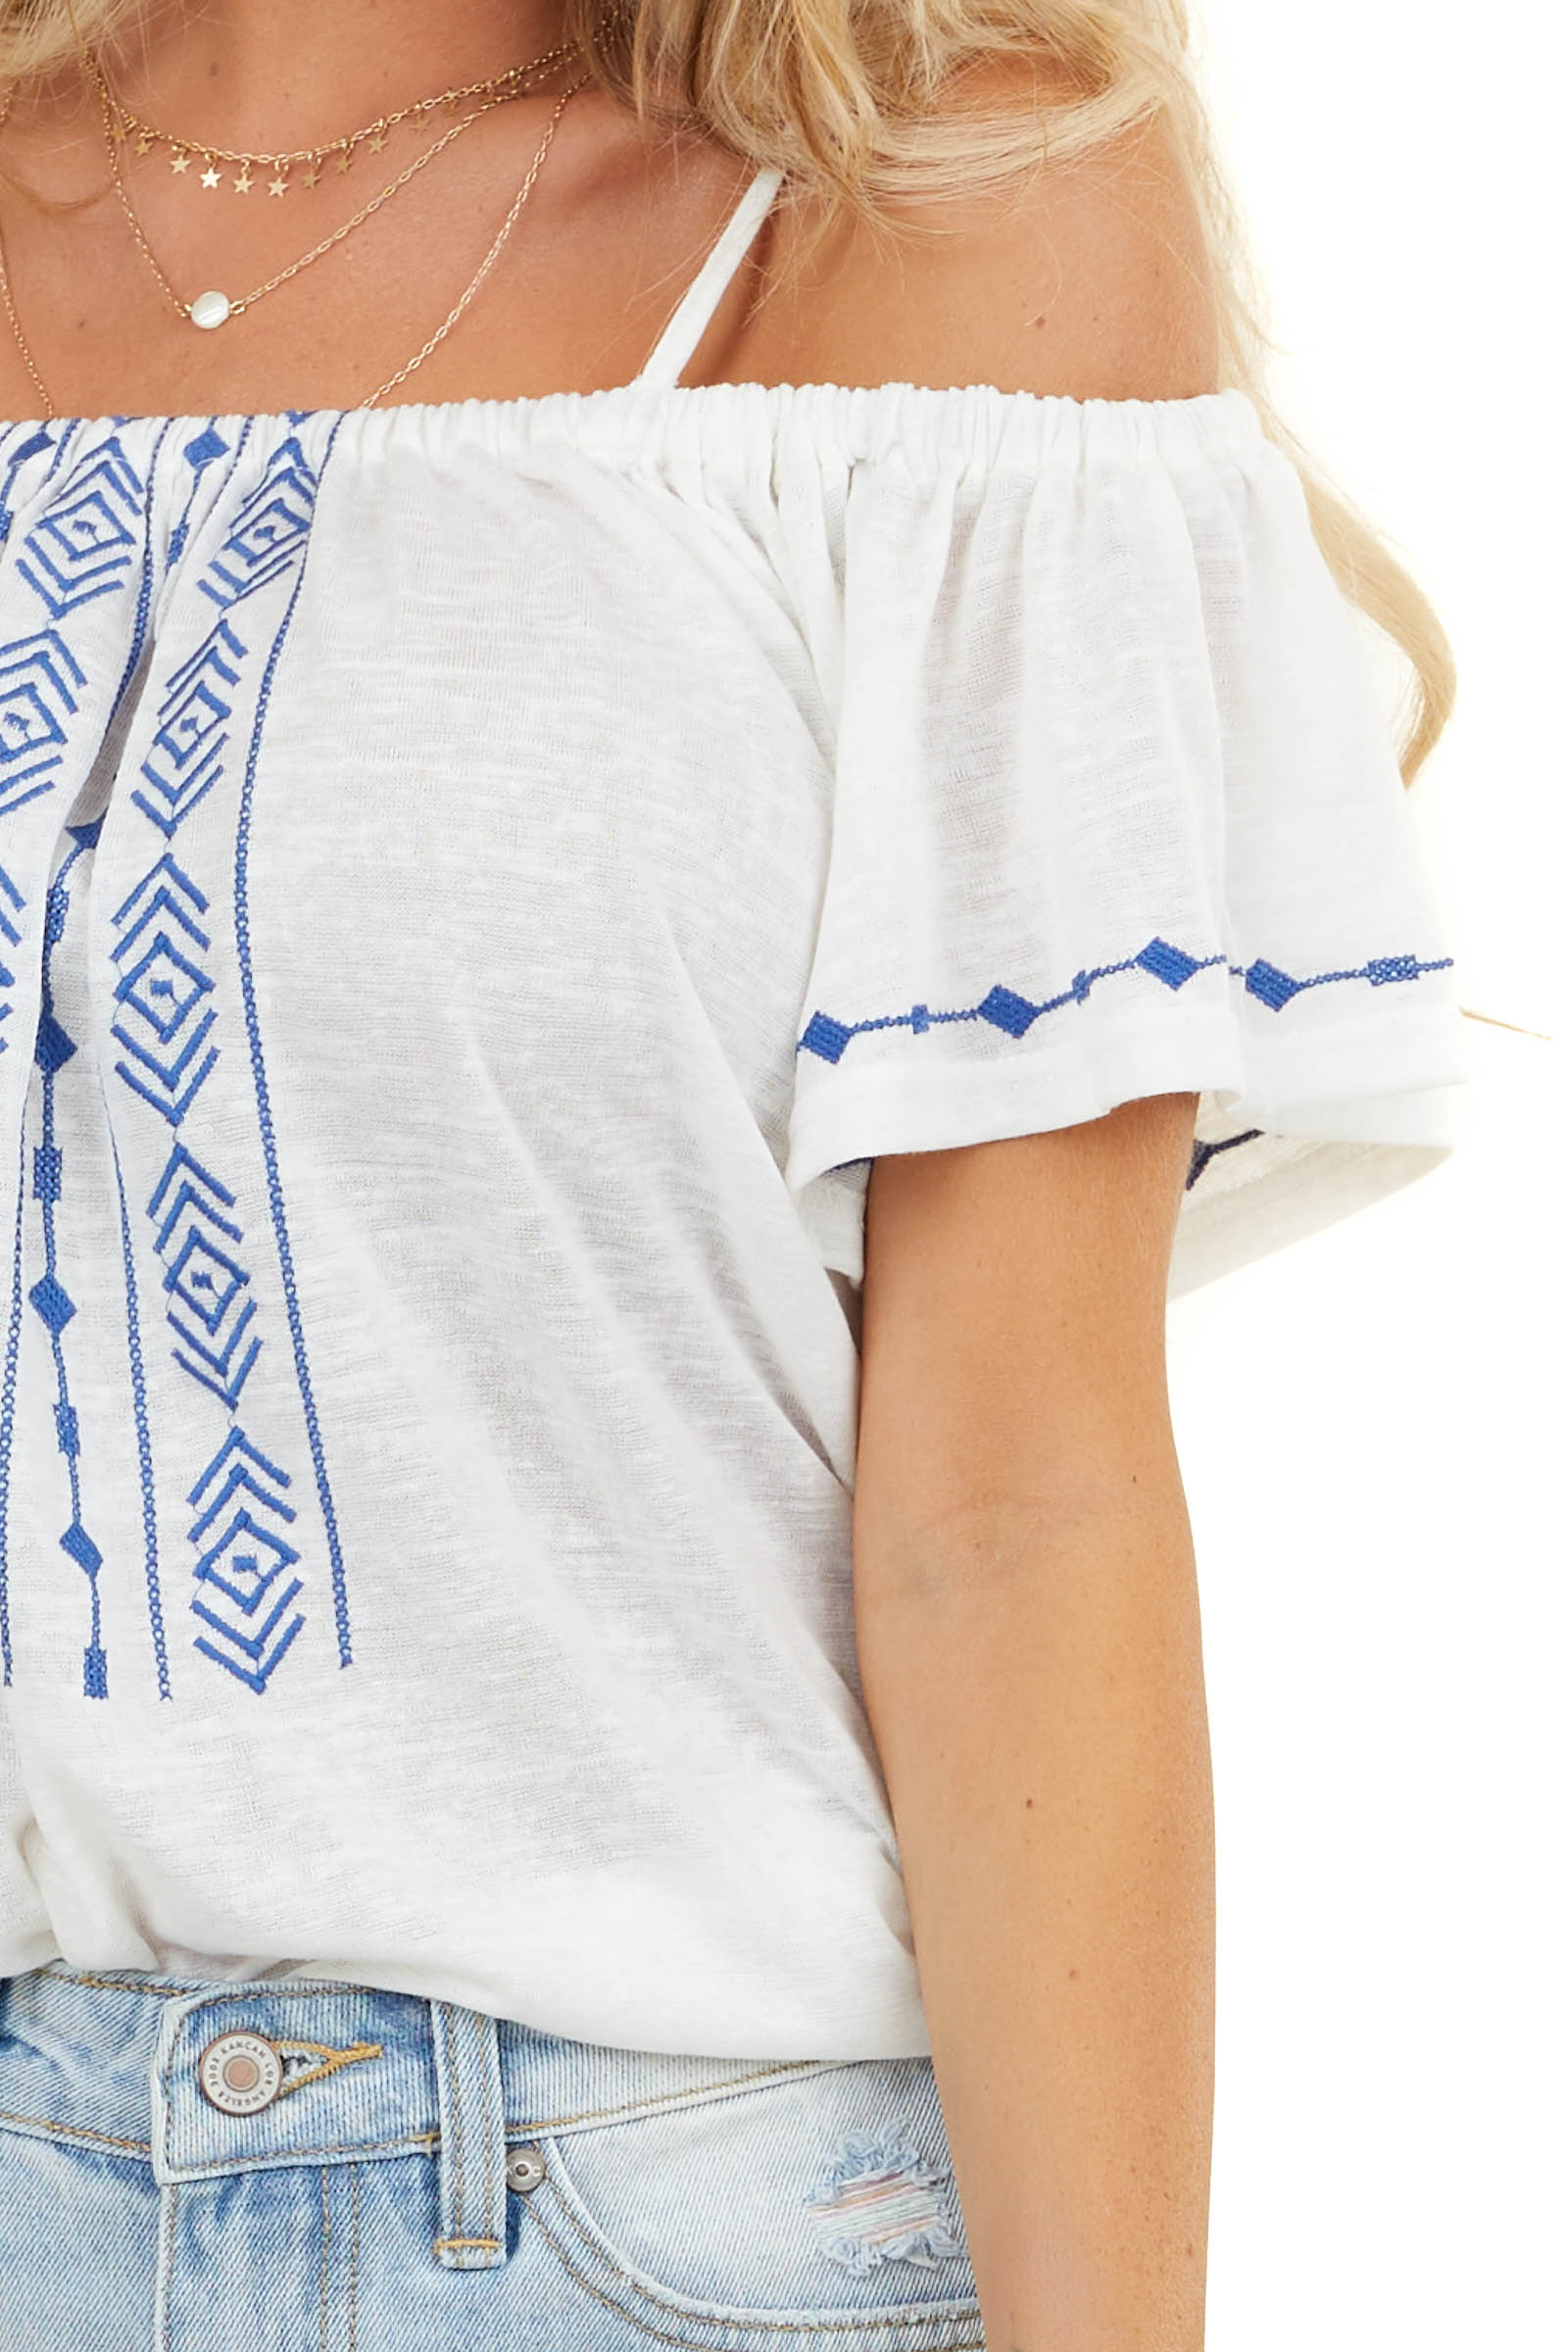 Off White Cold Shoulder Top with Blue Embroidery Detail